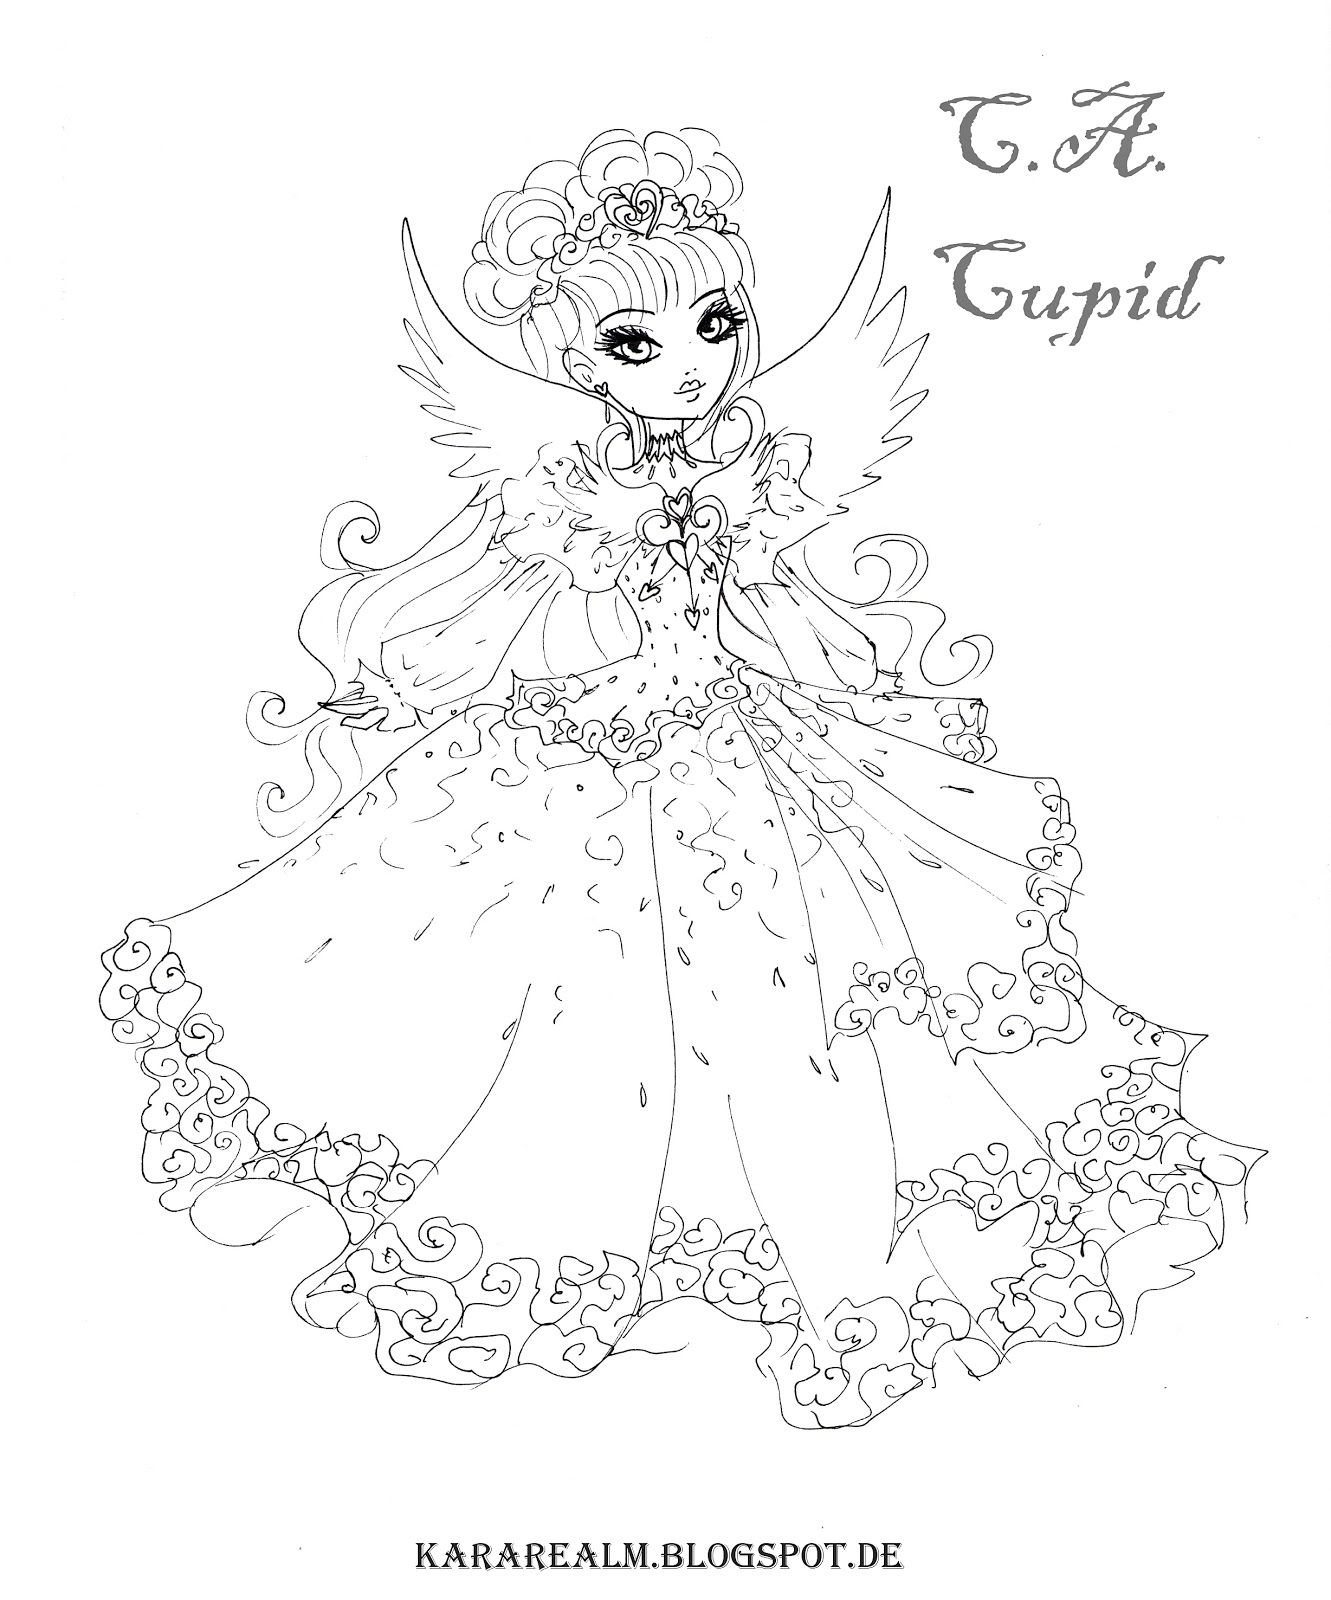 Coloring pages gone wrong - Kara Realm Ever After High Coloring Pages